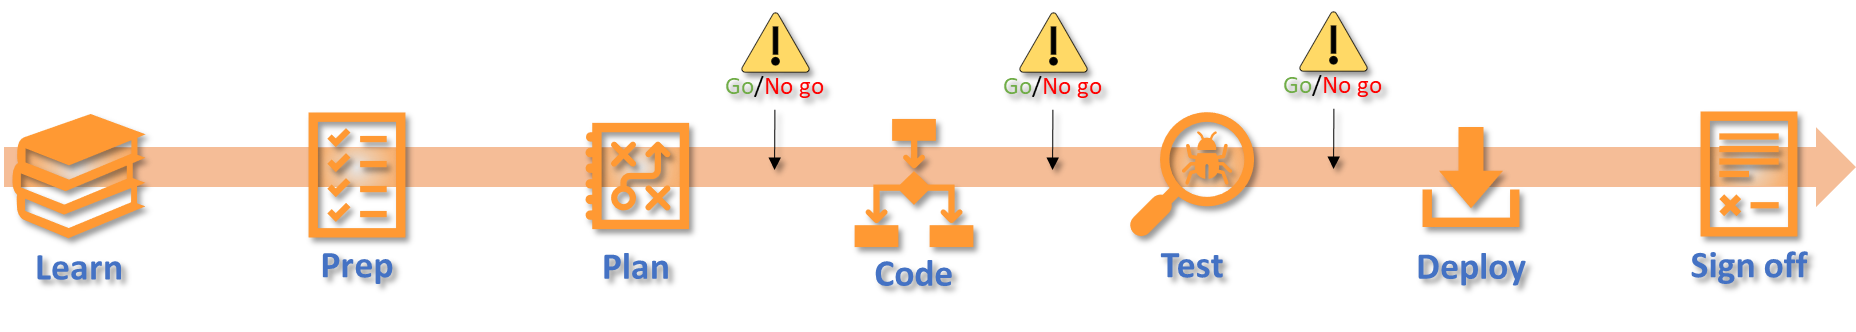 Typical Migration Workflow - high level